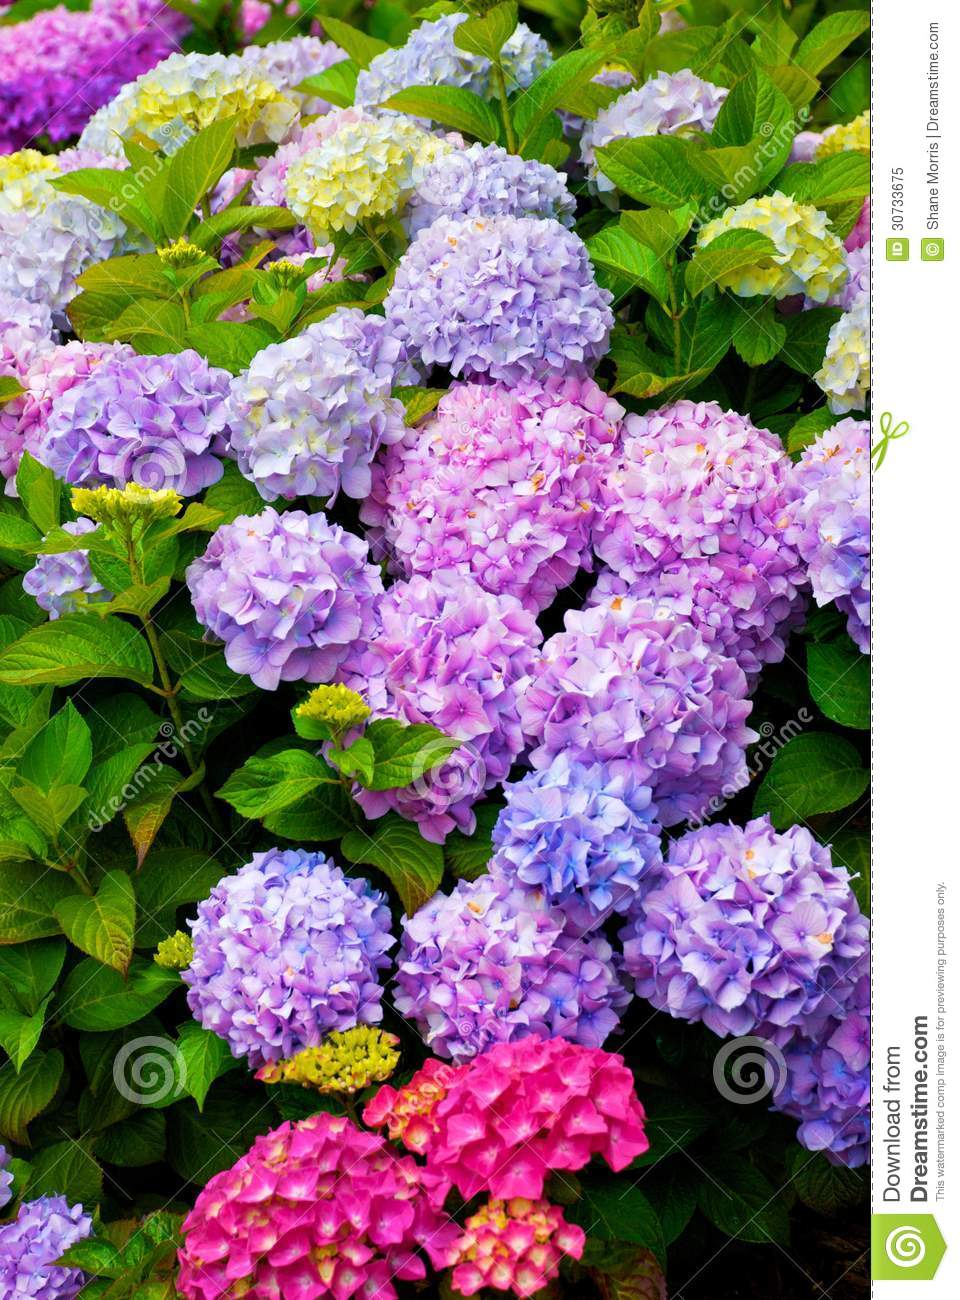 Multi Colored Hydrangea Bush With Blooms Royalty Free